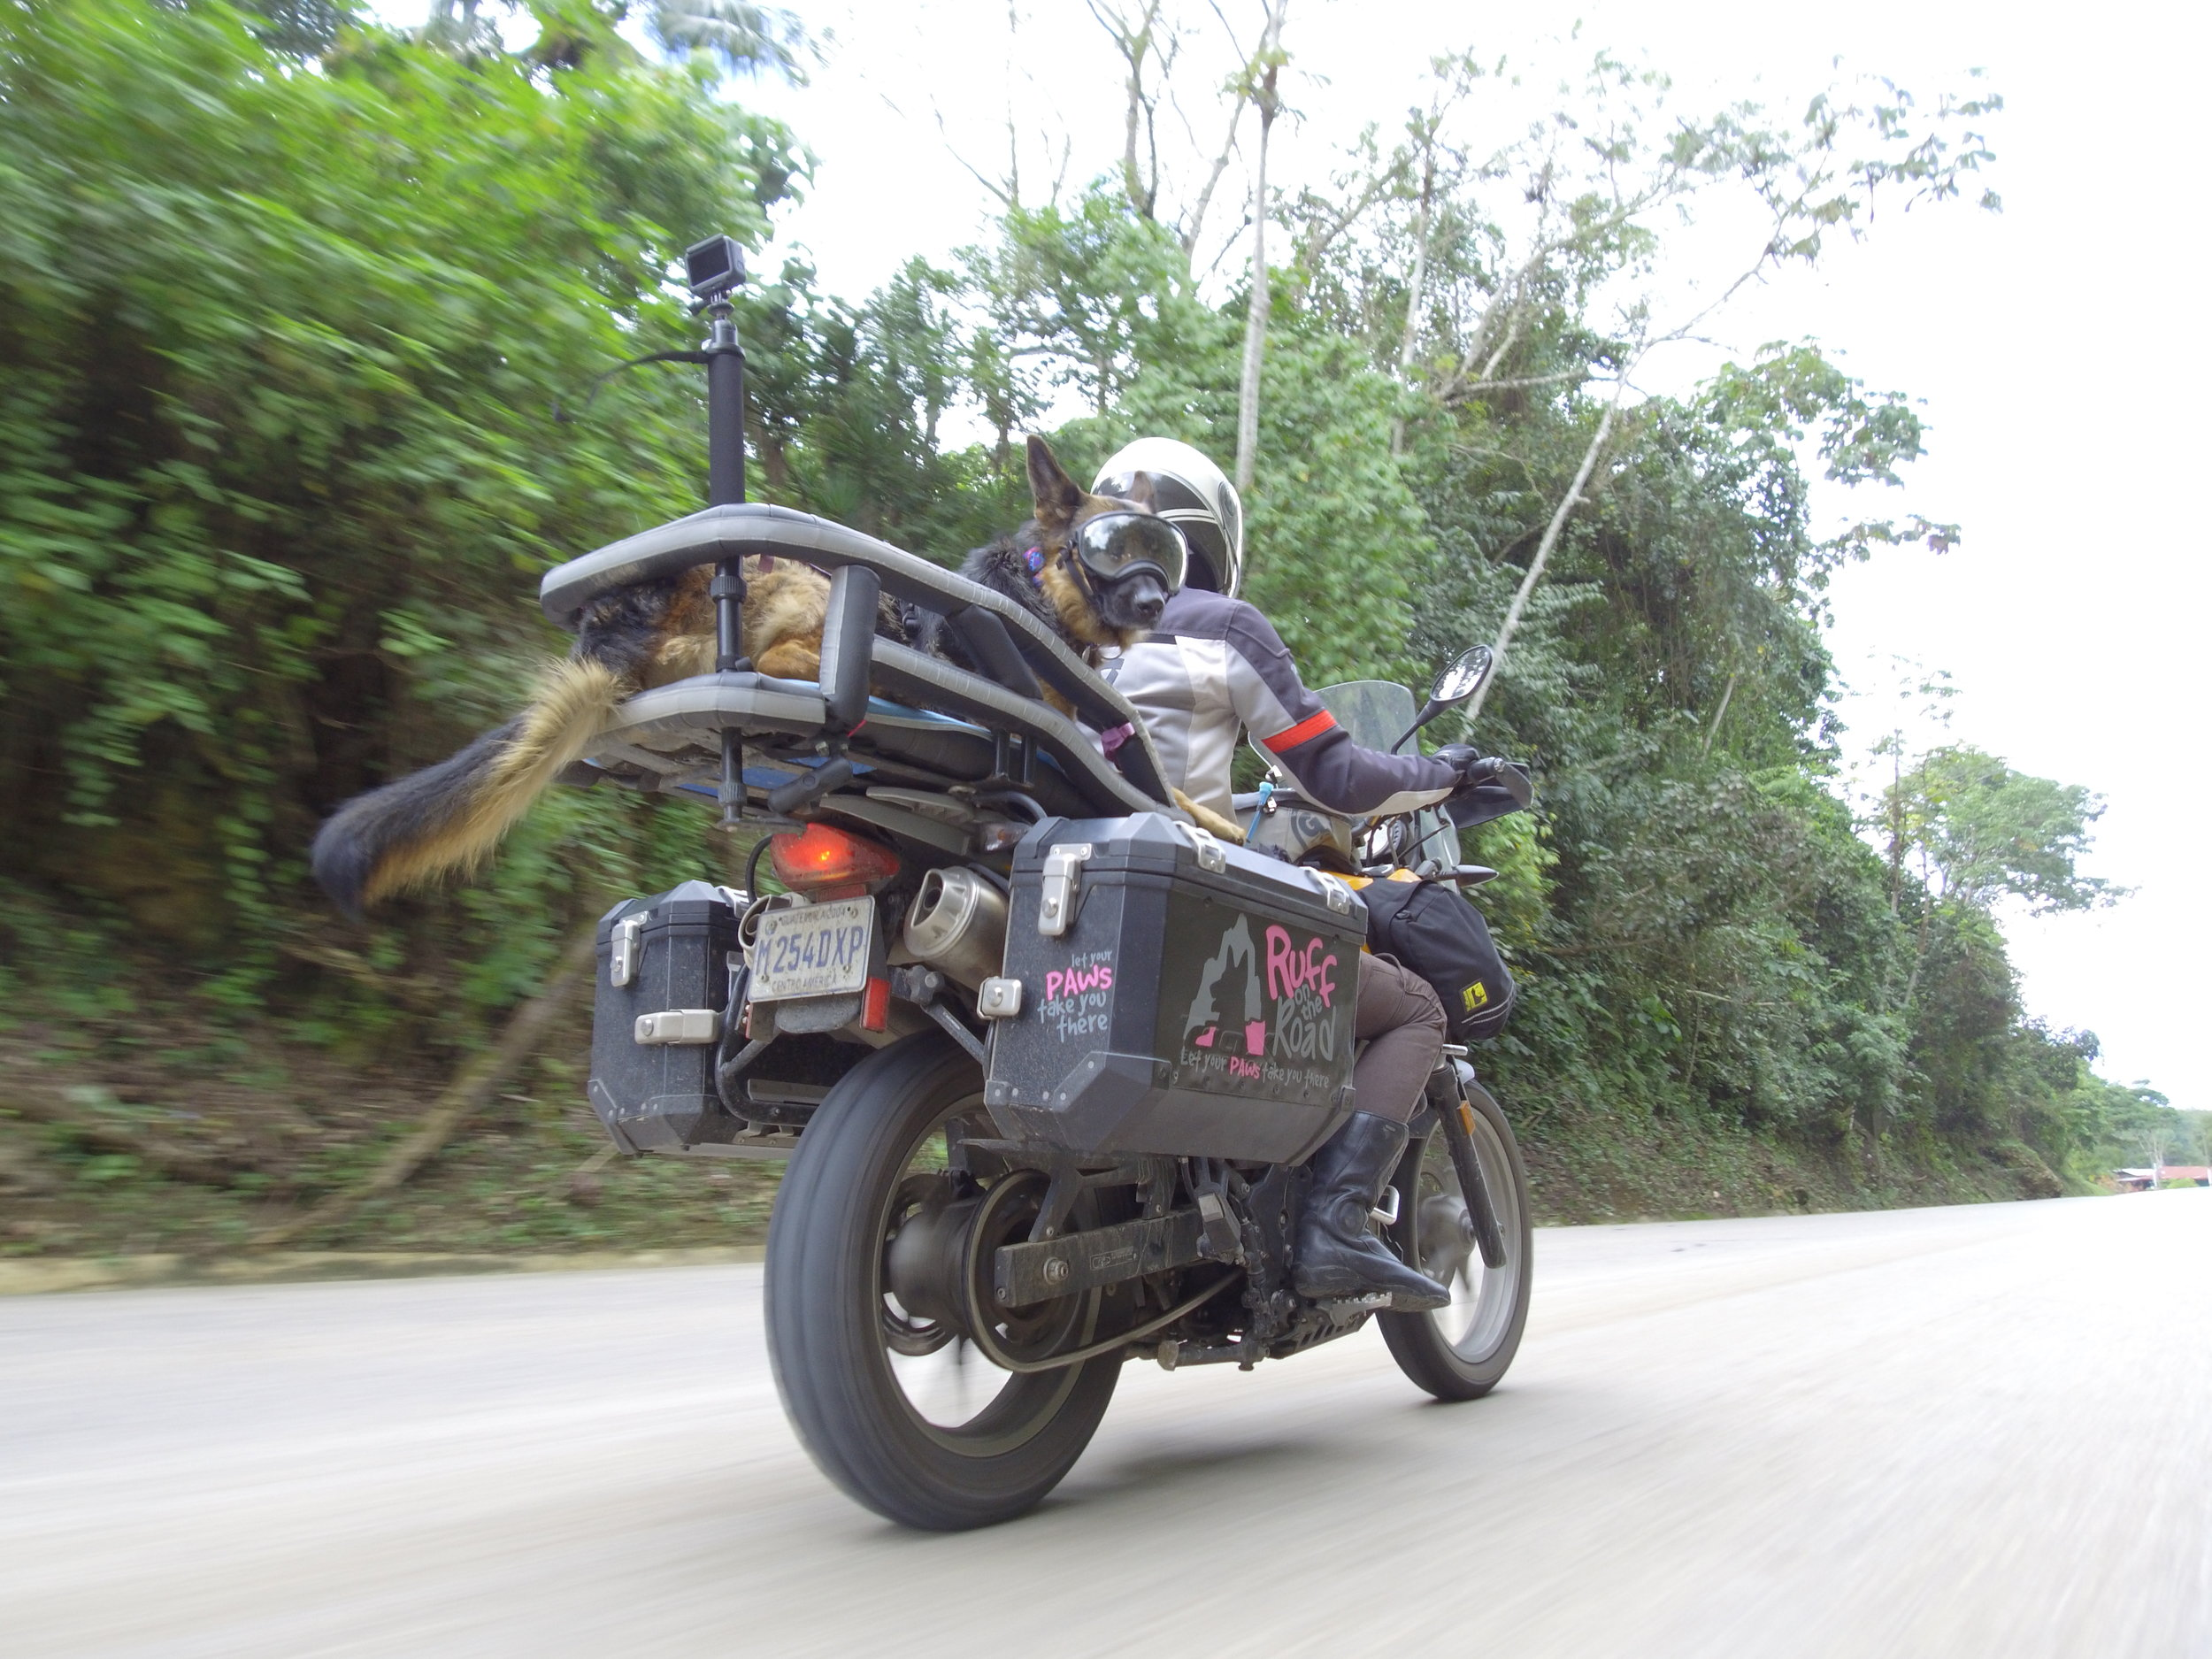 Jess-Greg-Stone-Ruff-on-the-Road-dog-adventure-rider-radio-motorcycle-podcast-4.jpeg